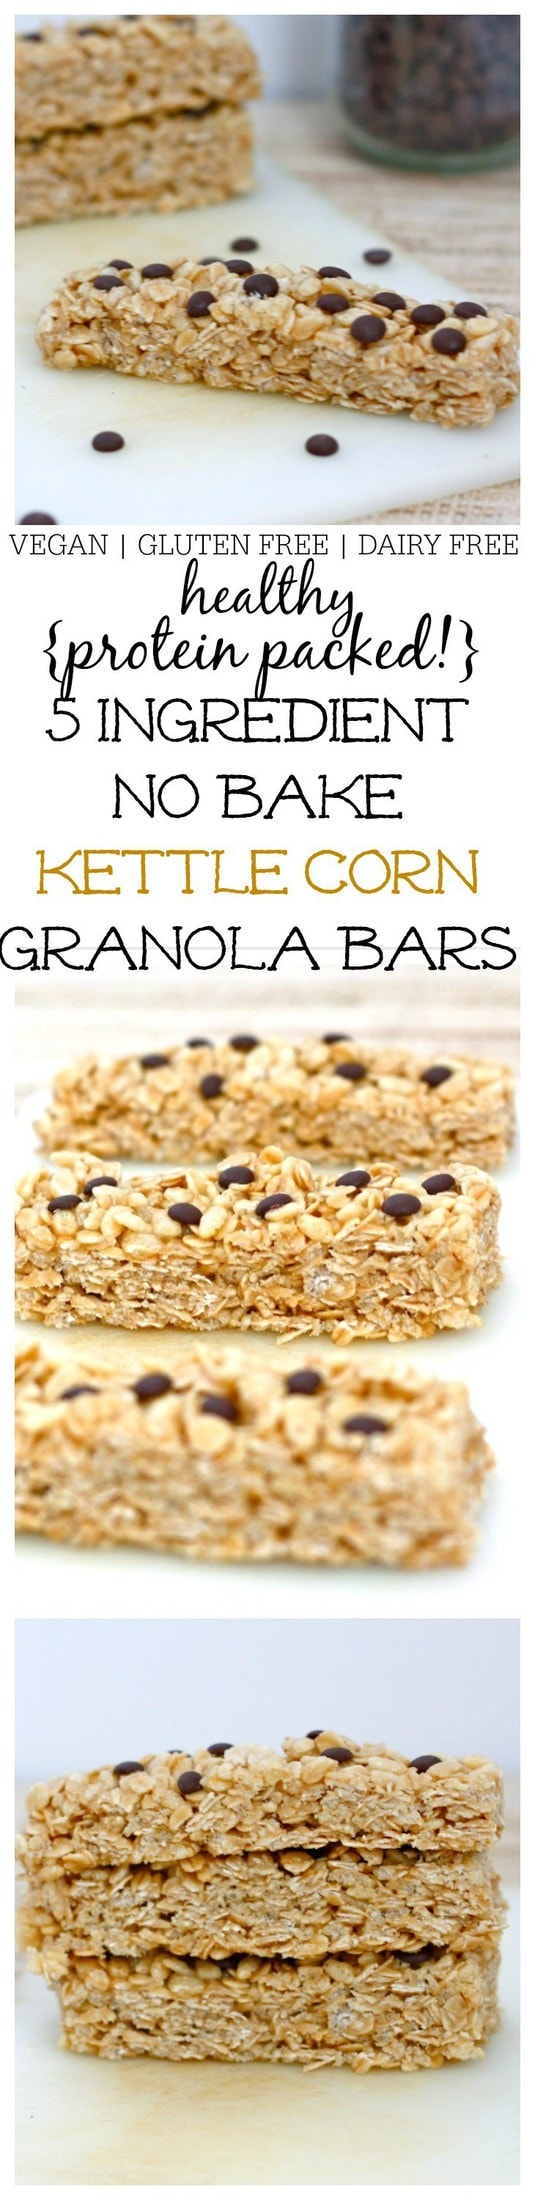 5 Ingredient No Bake Kettle Corn Granola Bars- Just five ingredients, 1 bowl and 10 minutes is needed to whip up these delicious no bake kettle corn granola bars! Sweet, salty and the added crunch makes this a texture lover's dream! Vegan, dairy free, gluten free and a high protein option! @thebigmansworld- thebigmansworld.com